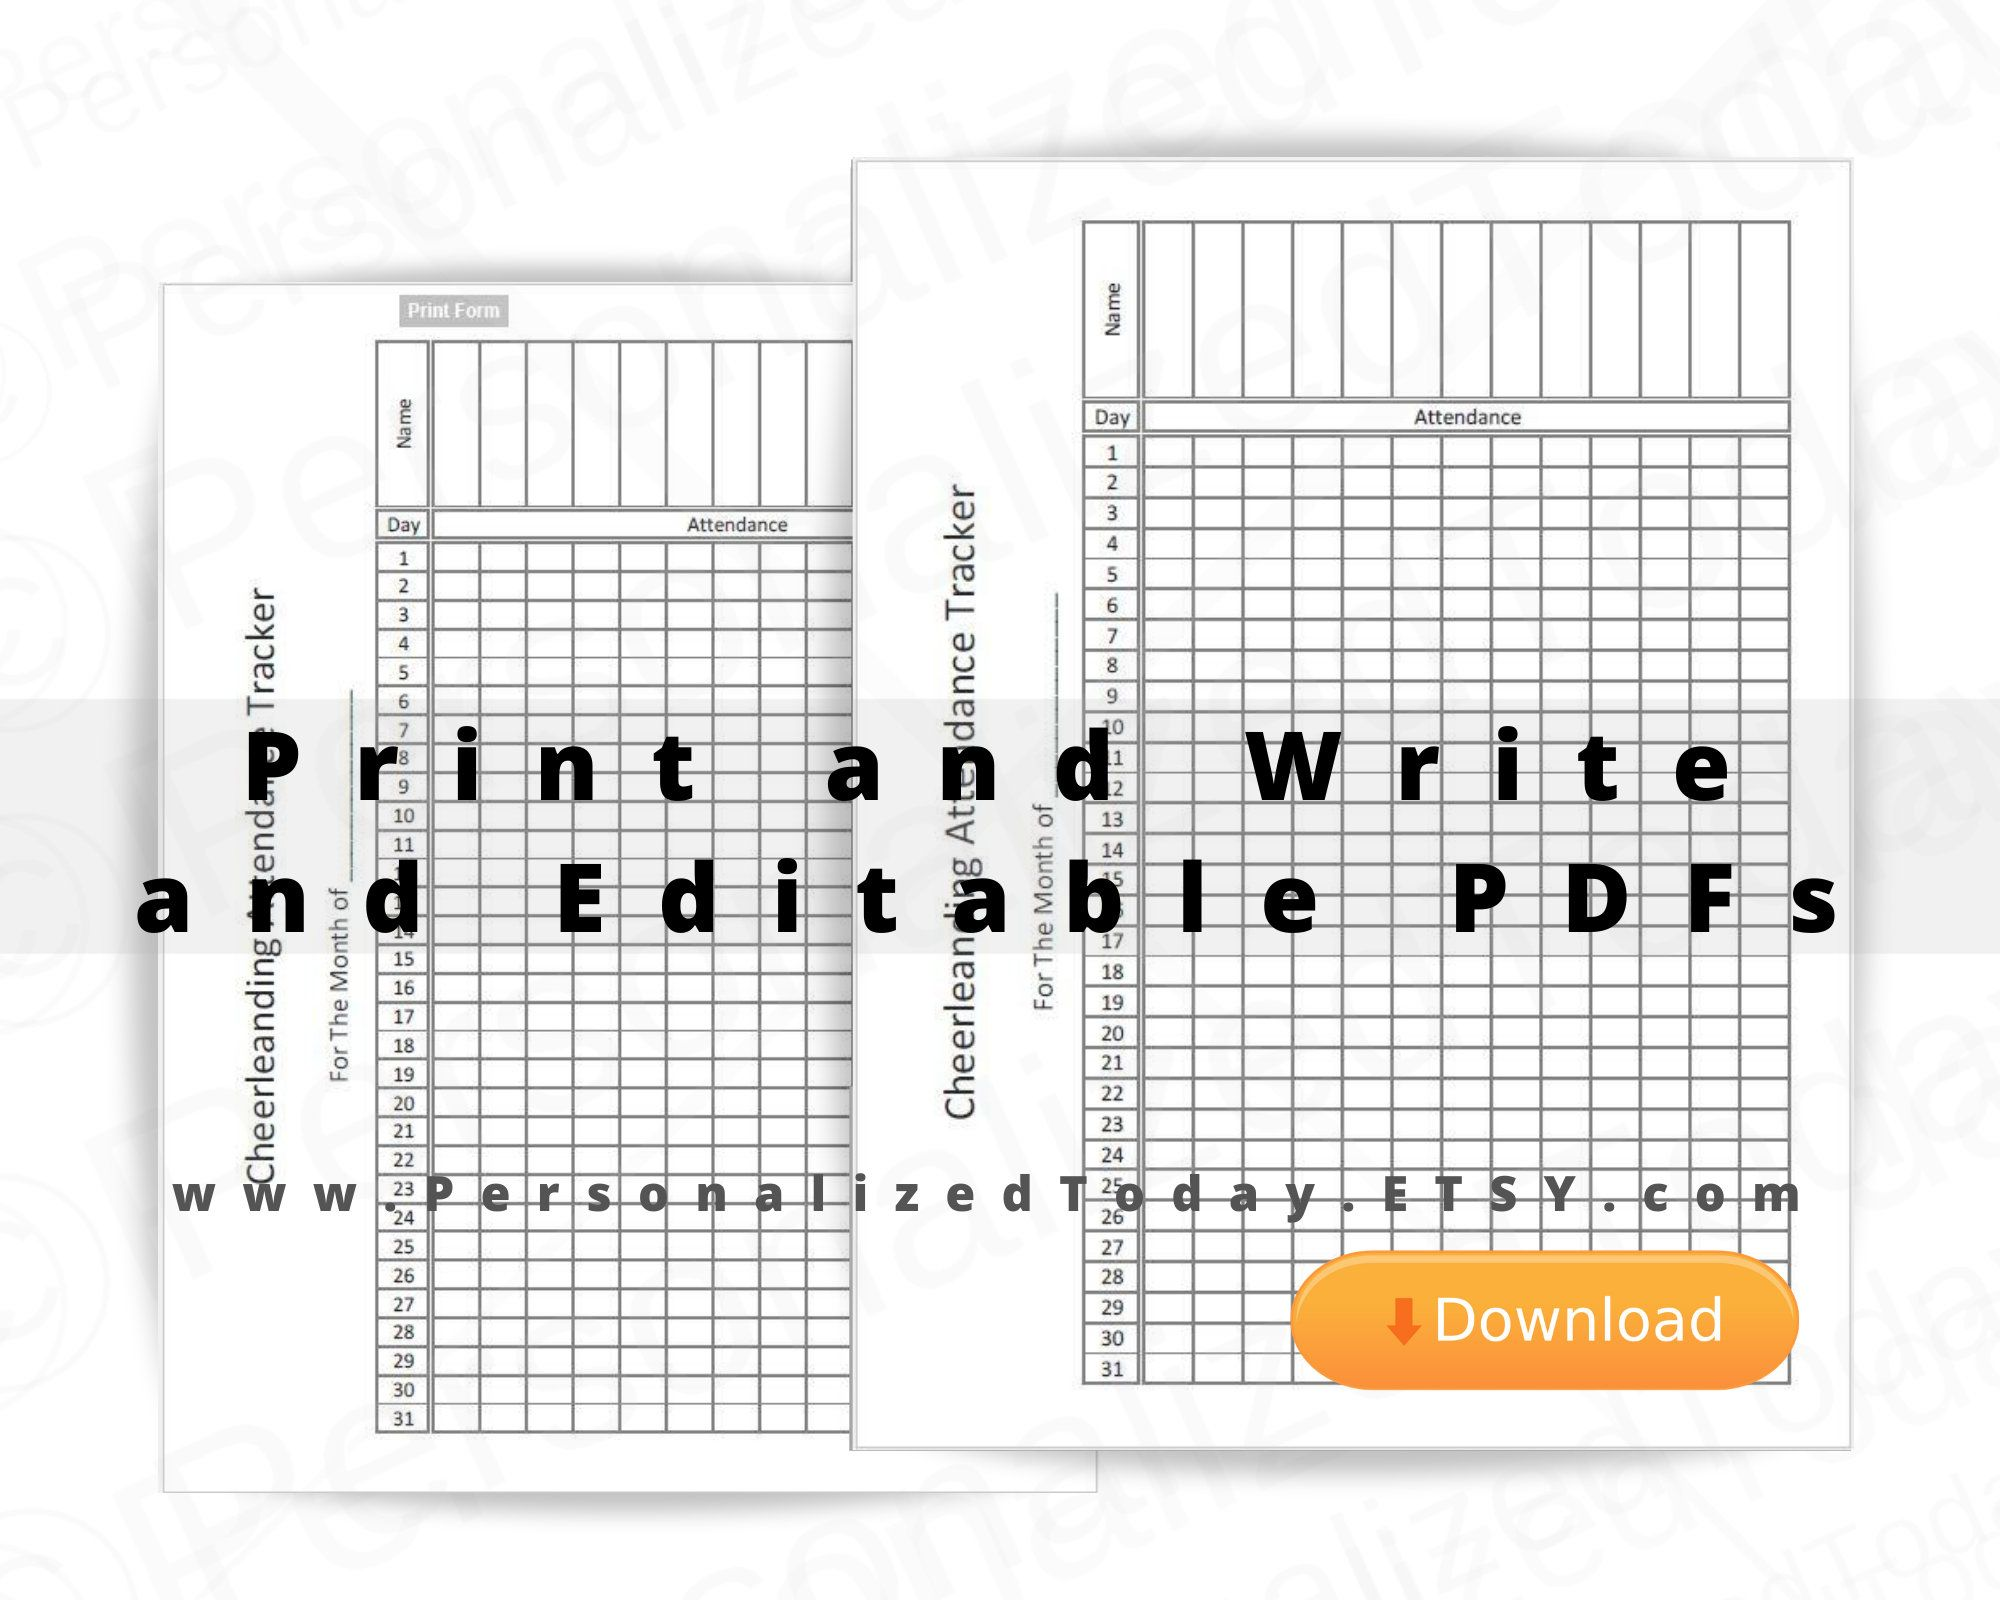 Cheerleading Attendance Tracker Fillable Editable and